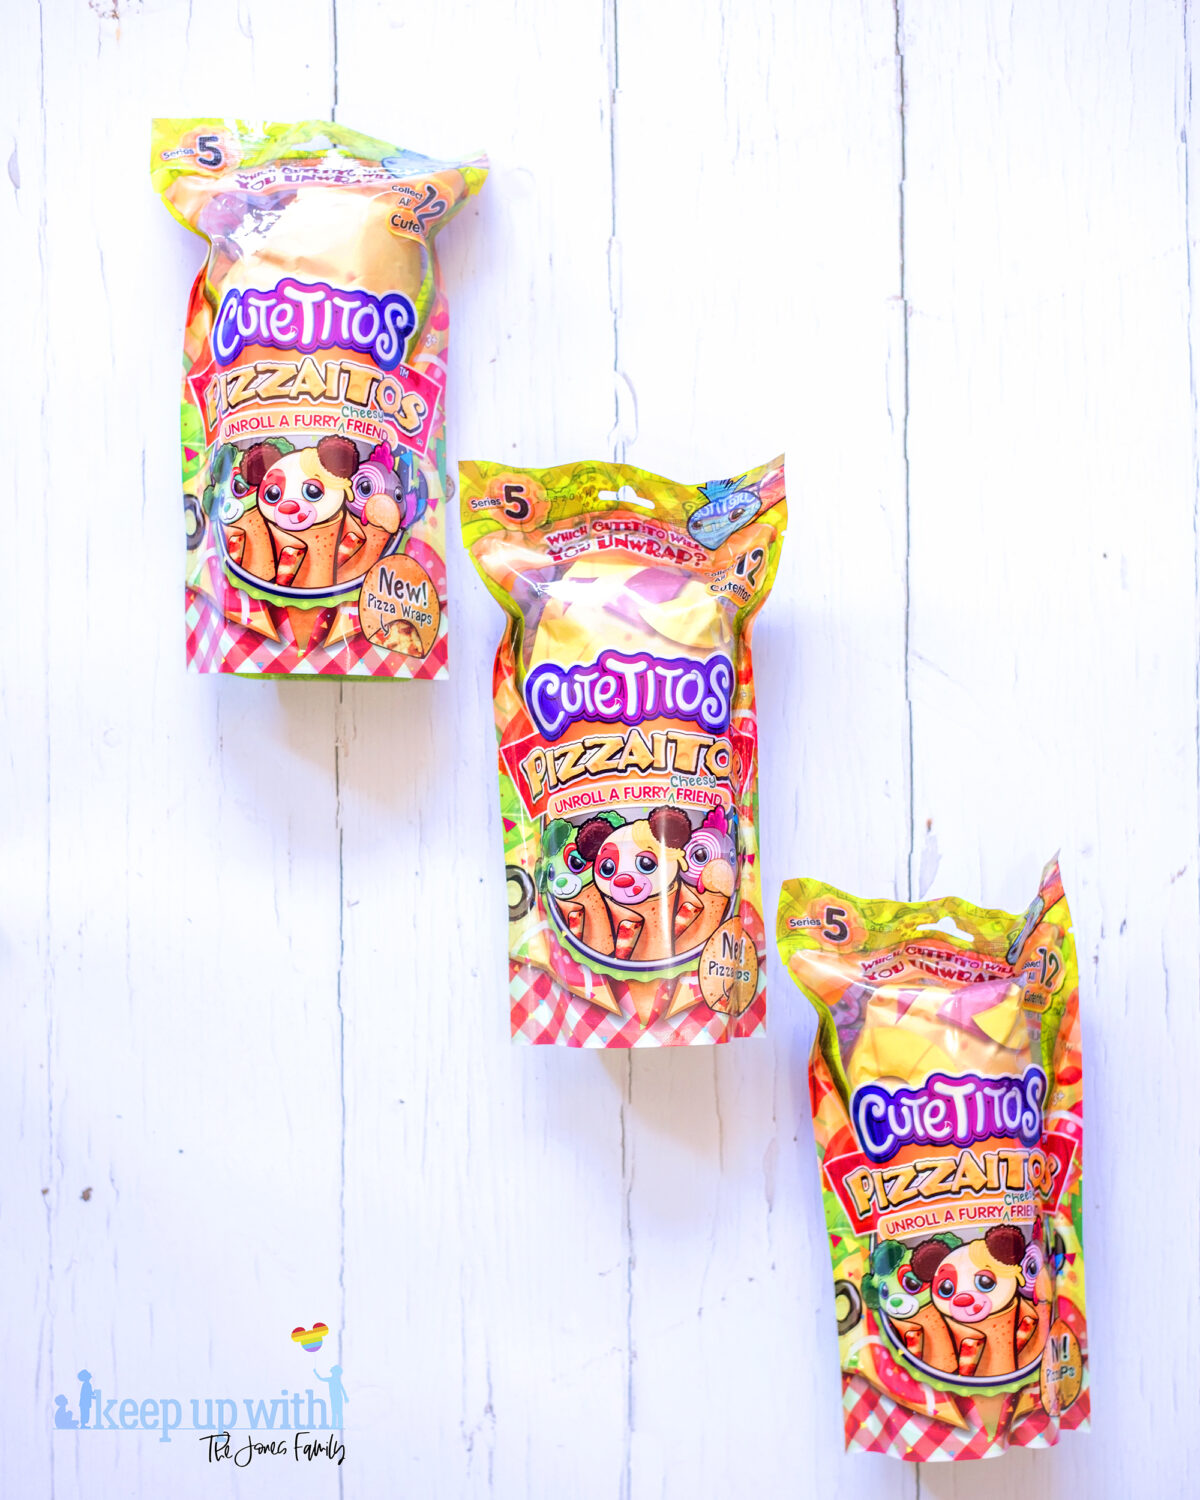 Cuteitos Pizzaitos. Image shows three Cuteitos Pizzaitos in their wrappers on a white wooden background.